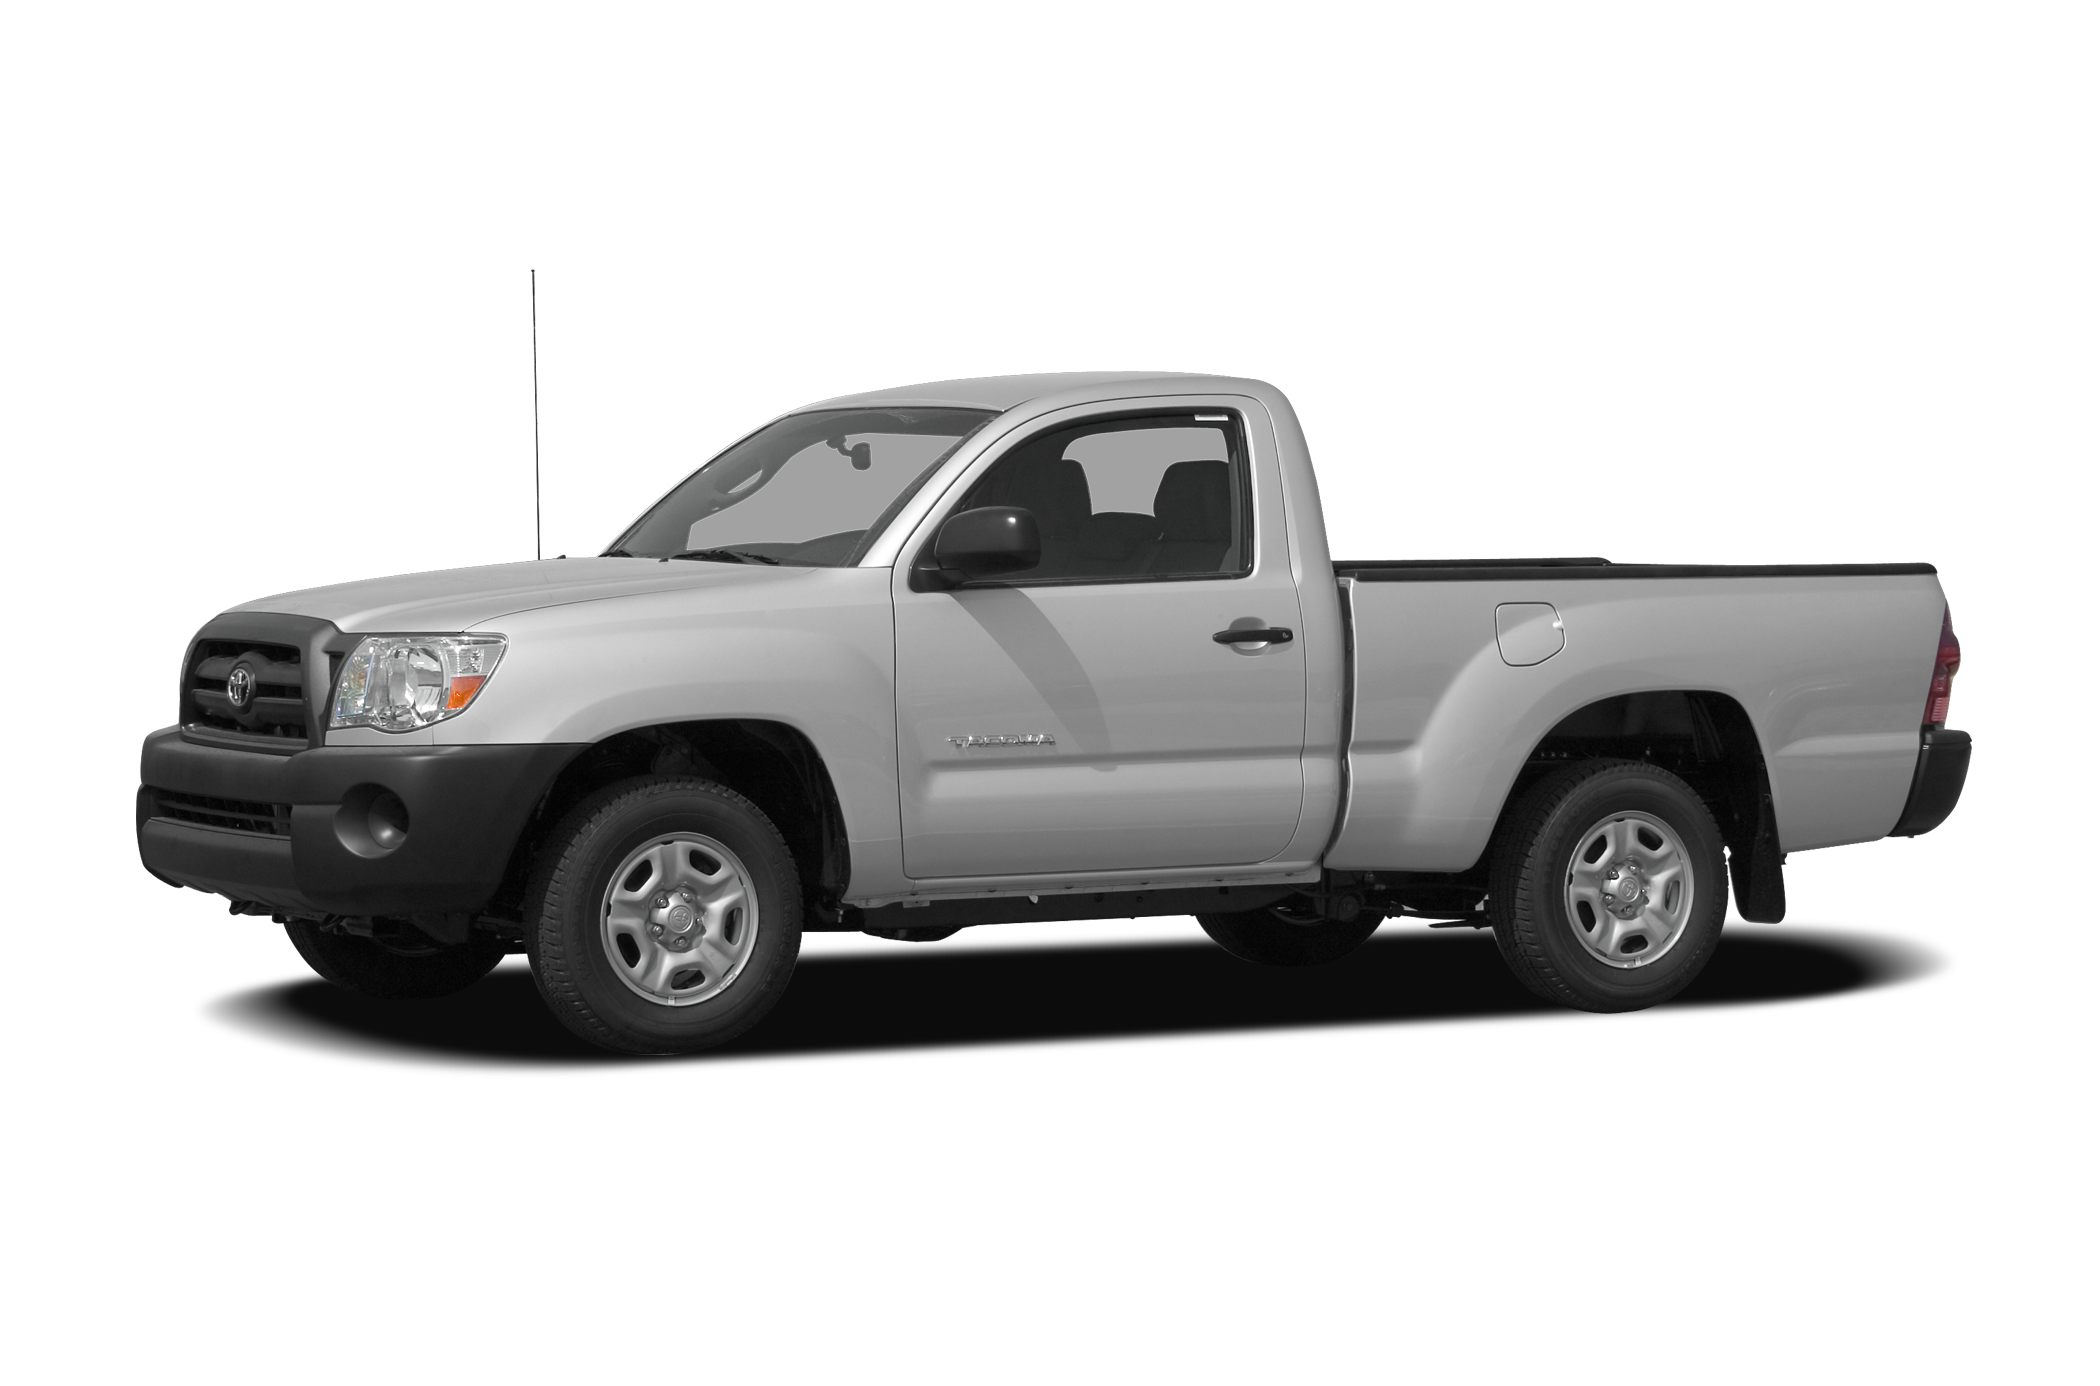 2008 Toyota Tacoma PreRunner Regular Cab Pickup for sale in Jasper for $14,998 with 118,317 miles